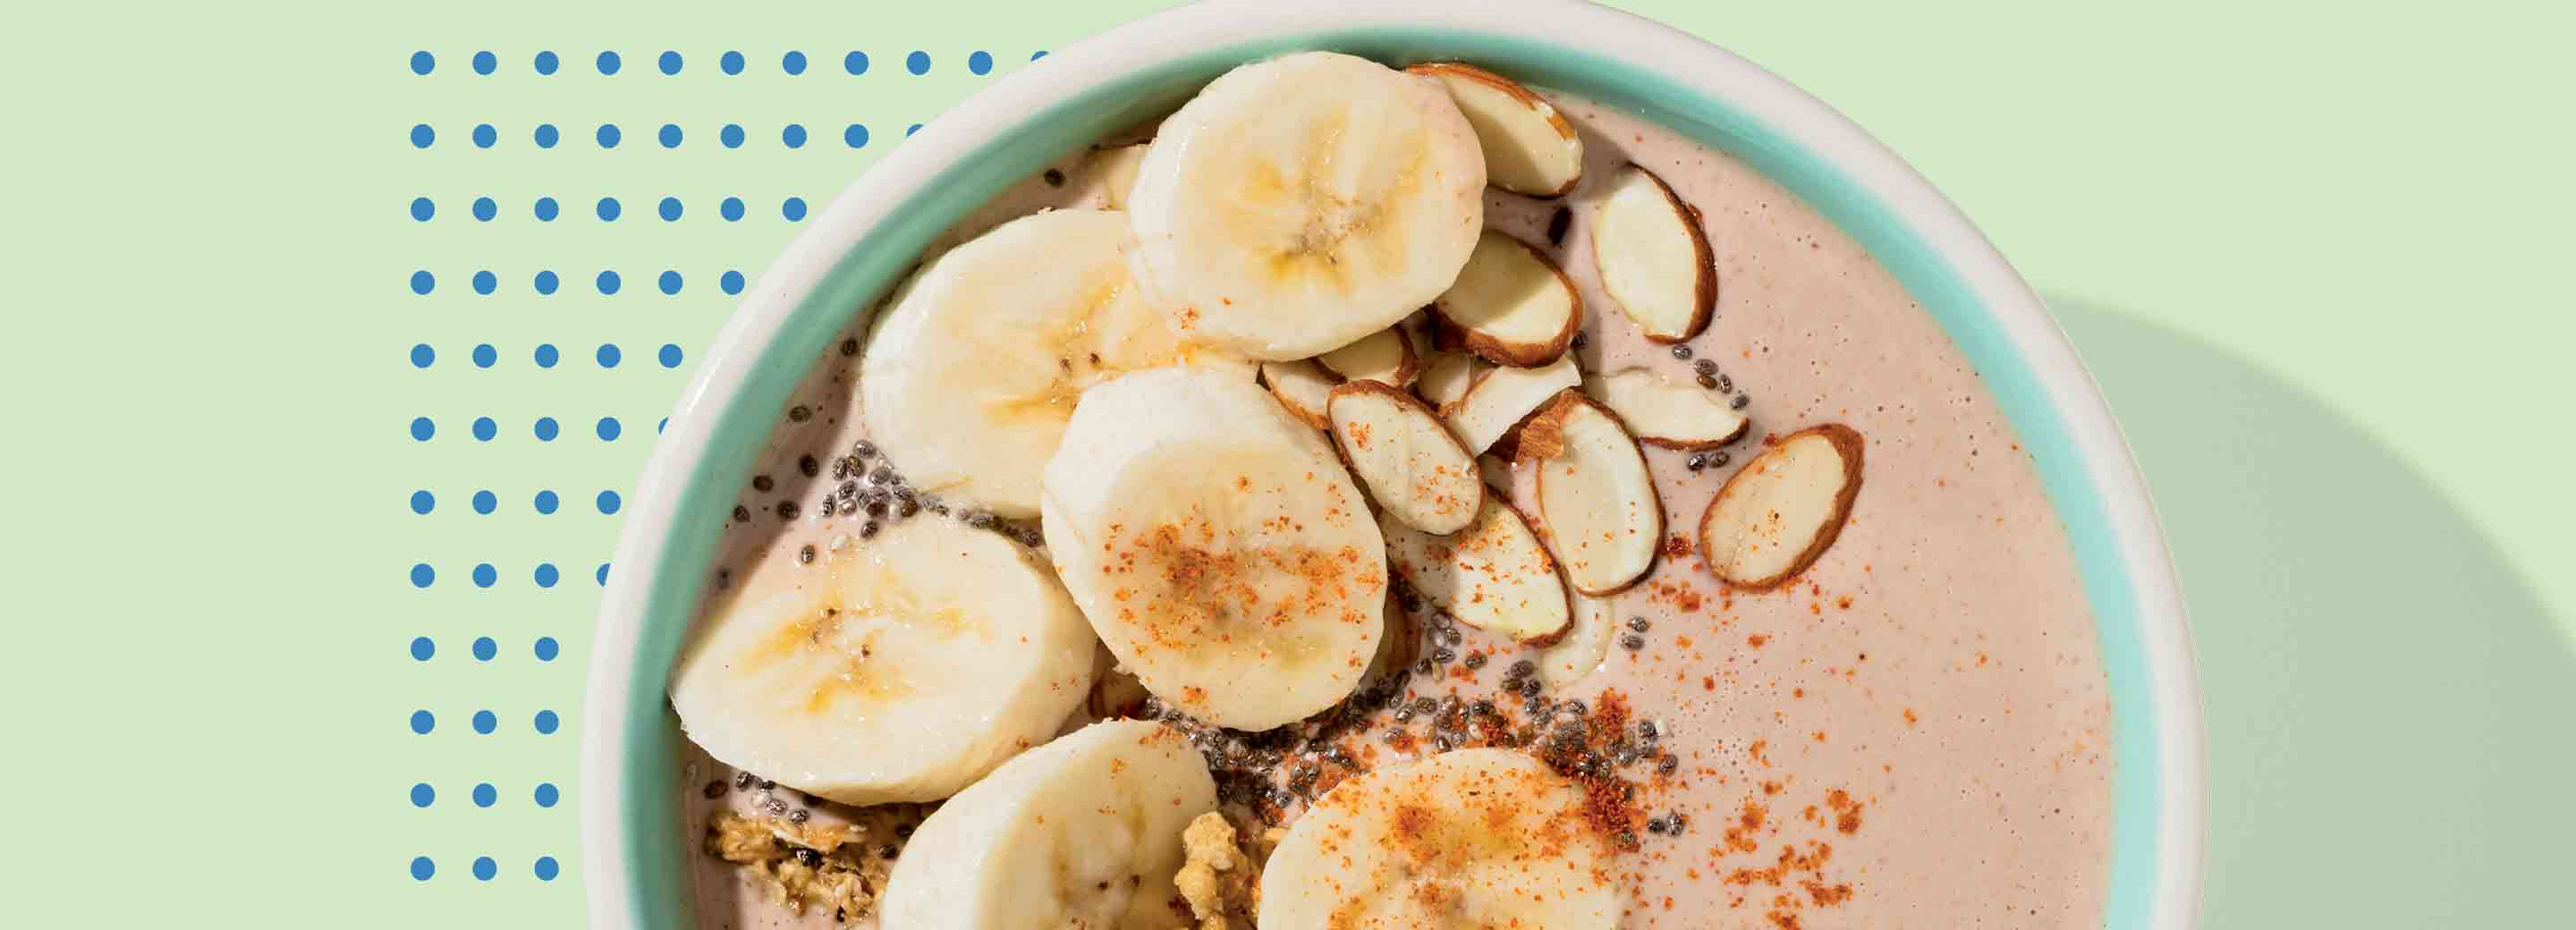 Chocolate Chile Protein Bowl